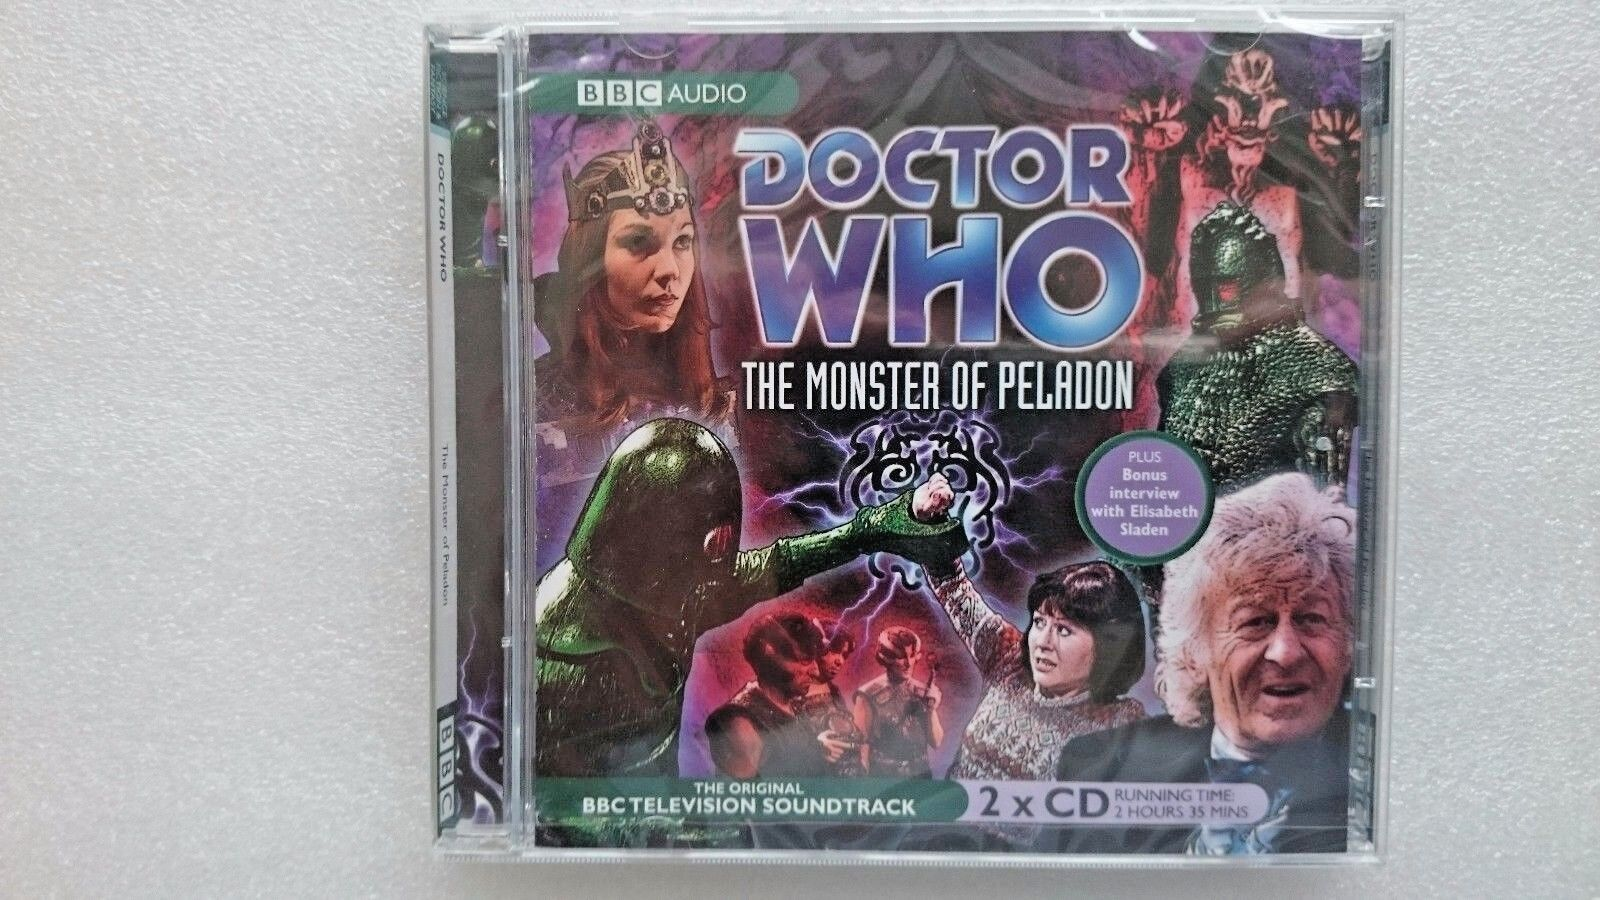 Doctor Who : The Monster of Peladon by BBC CD Audio Soundtrack - New and Sealed